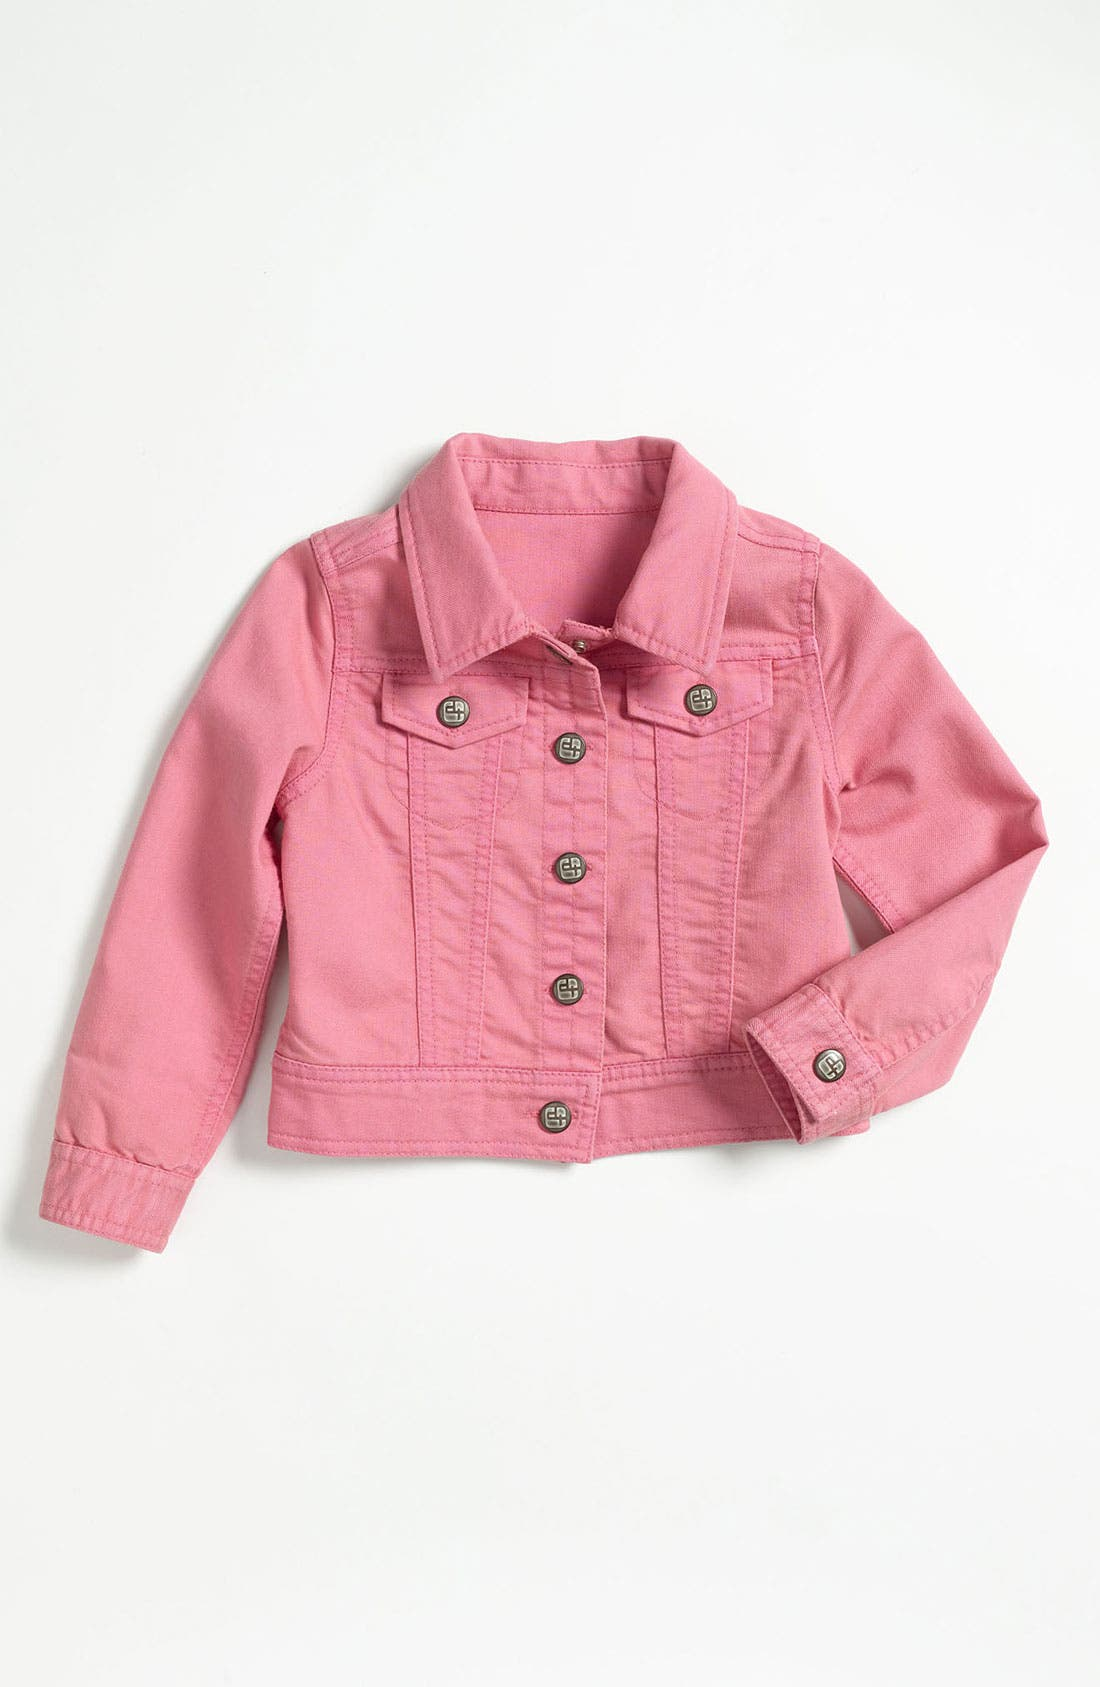 Main Image - Tucker + Tate Denim Jacket (Toddler)